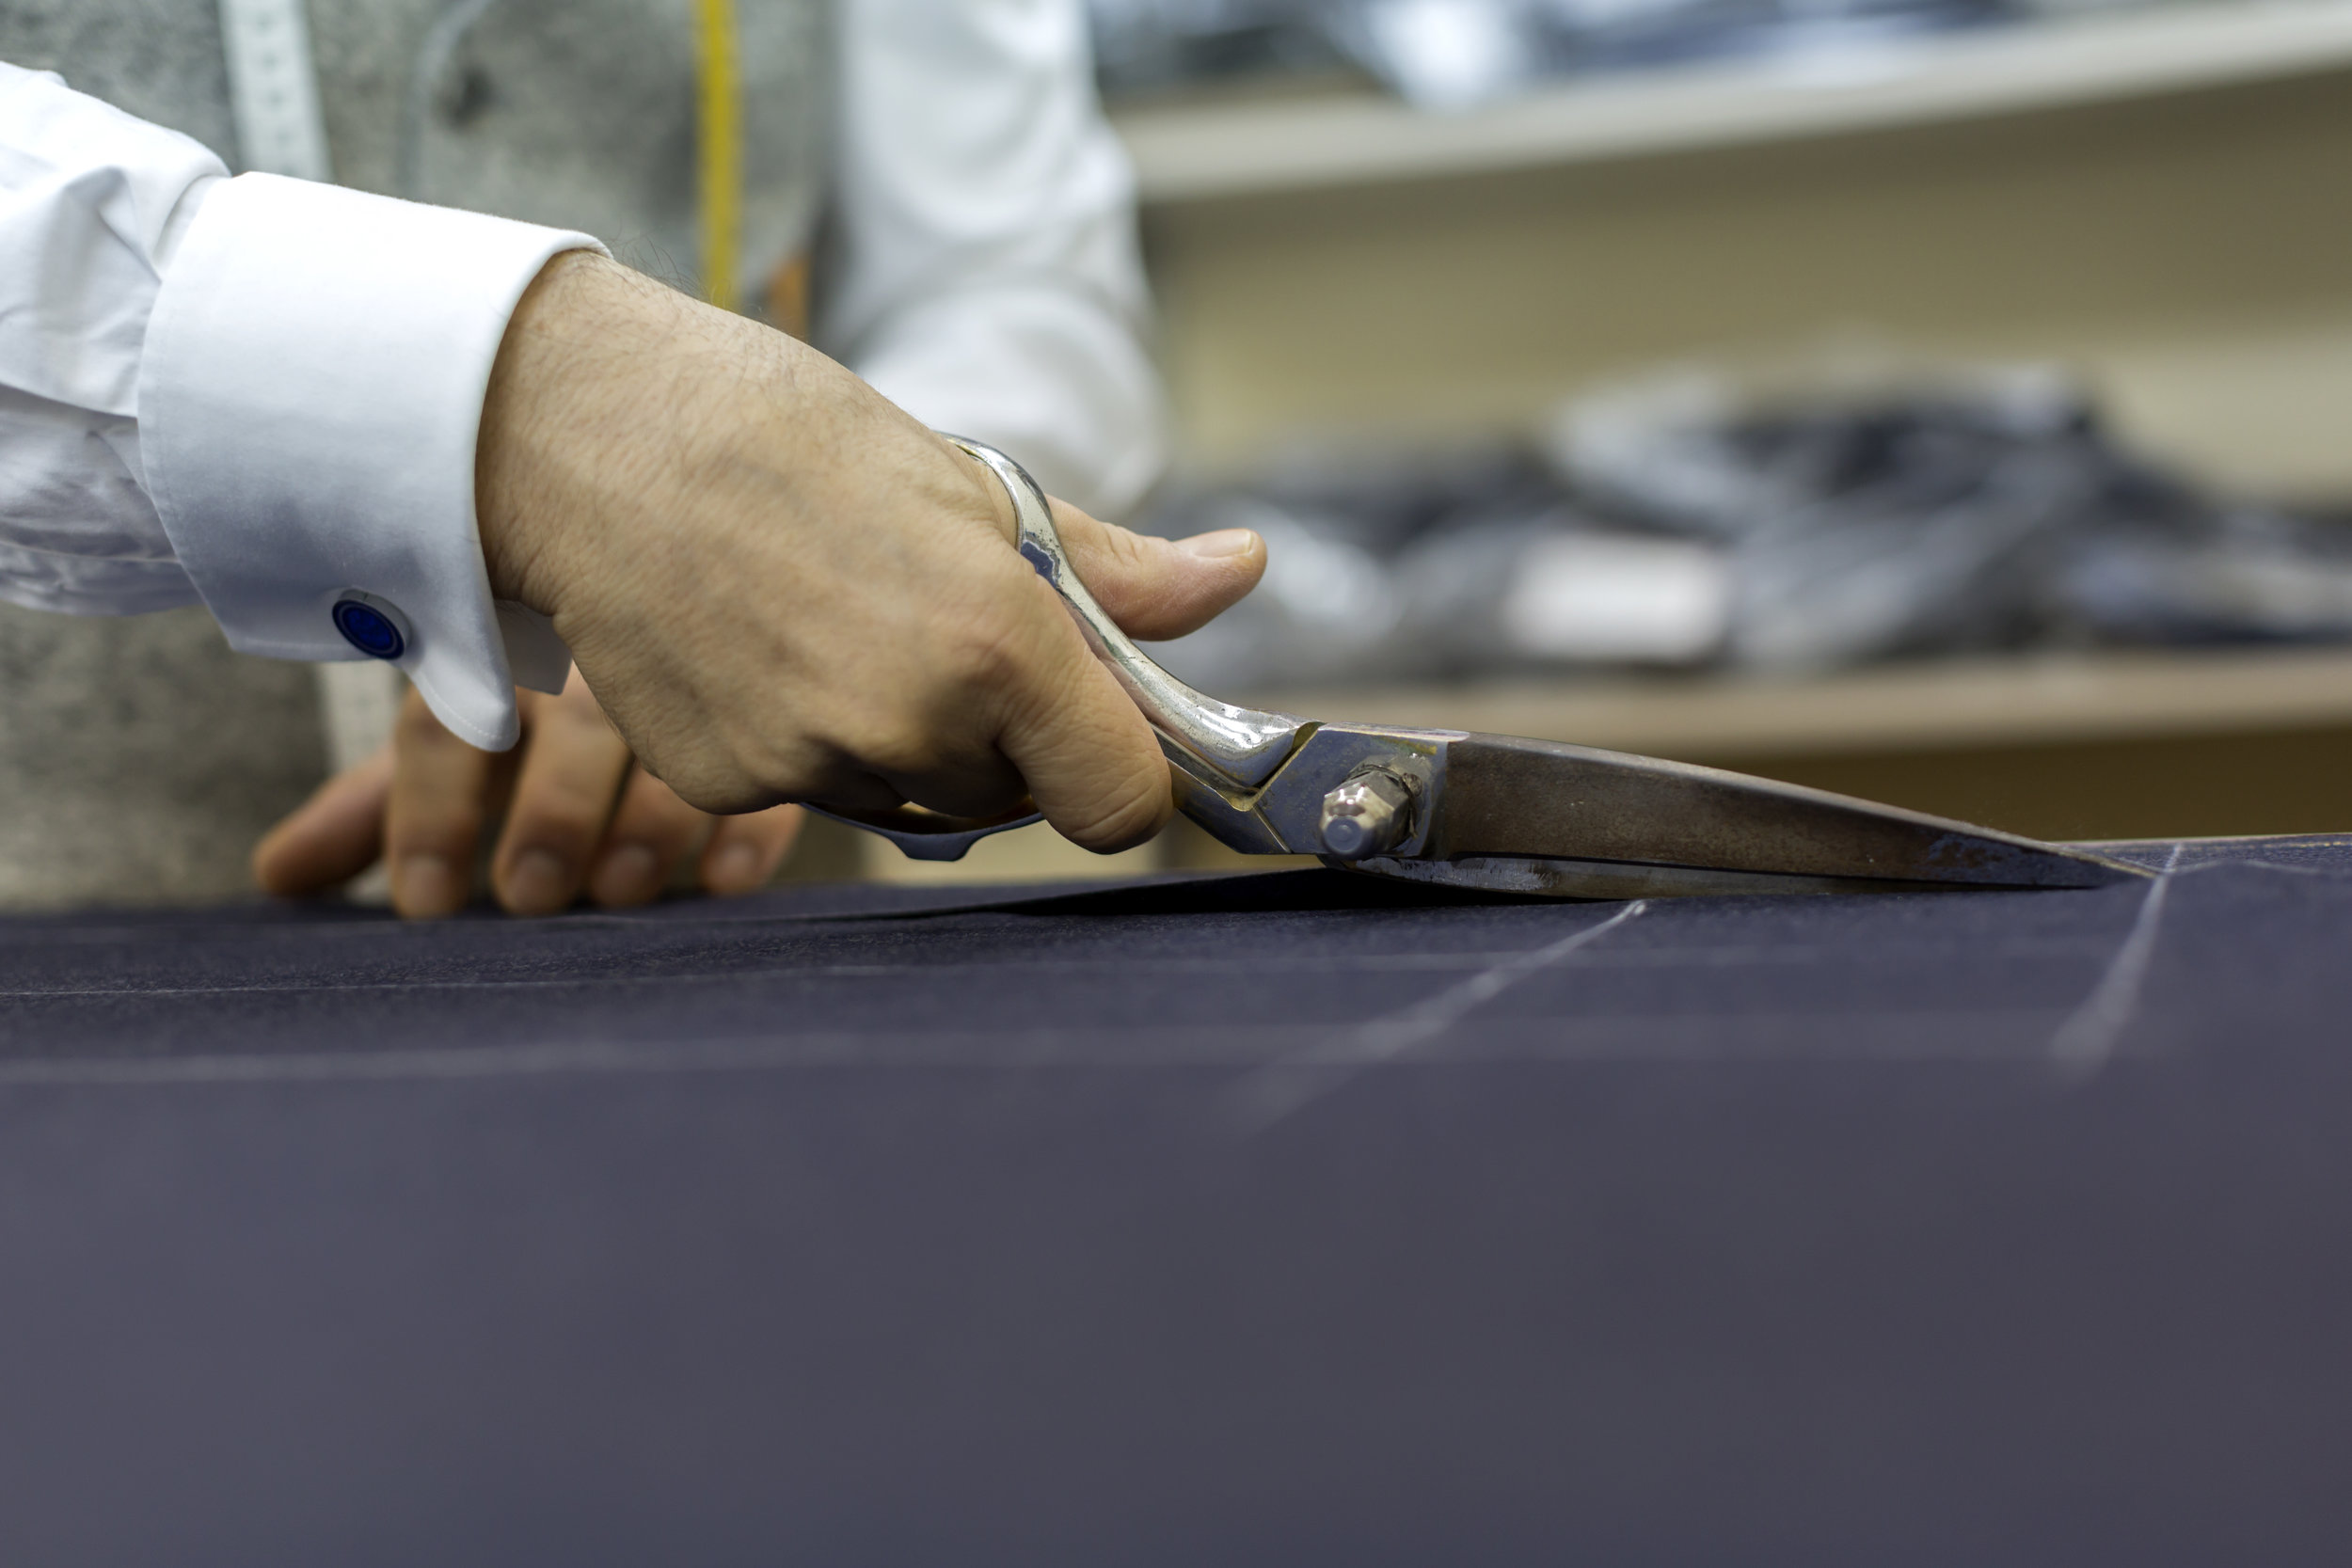 Hands cutting fabric with scissors